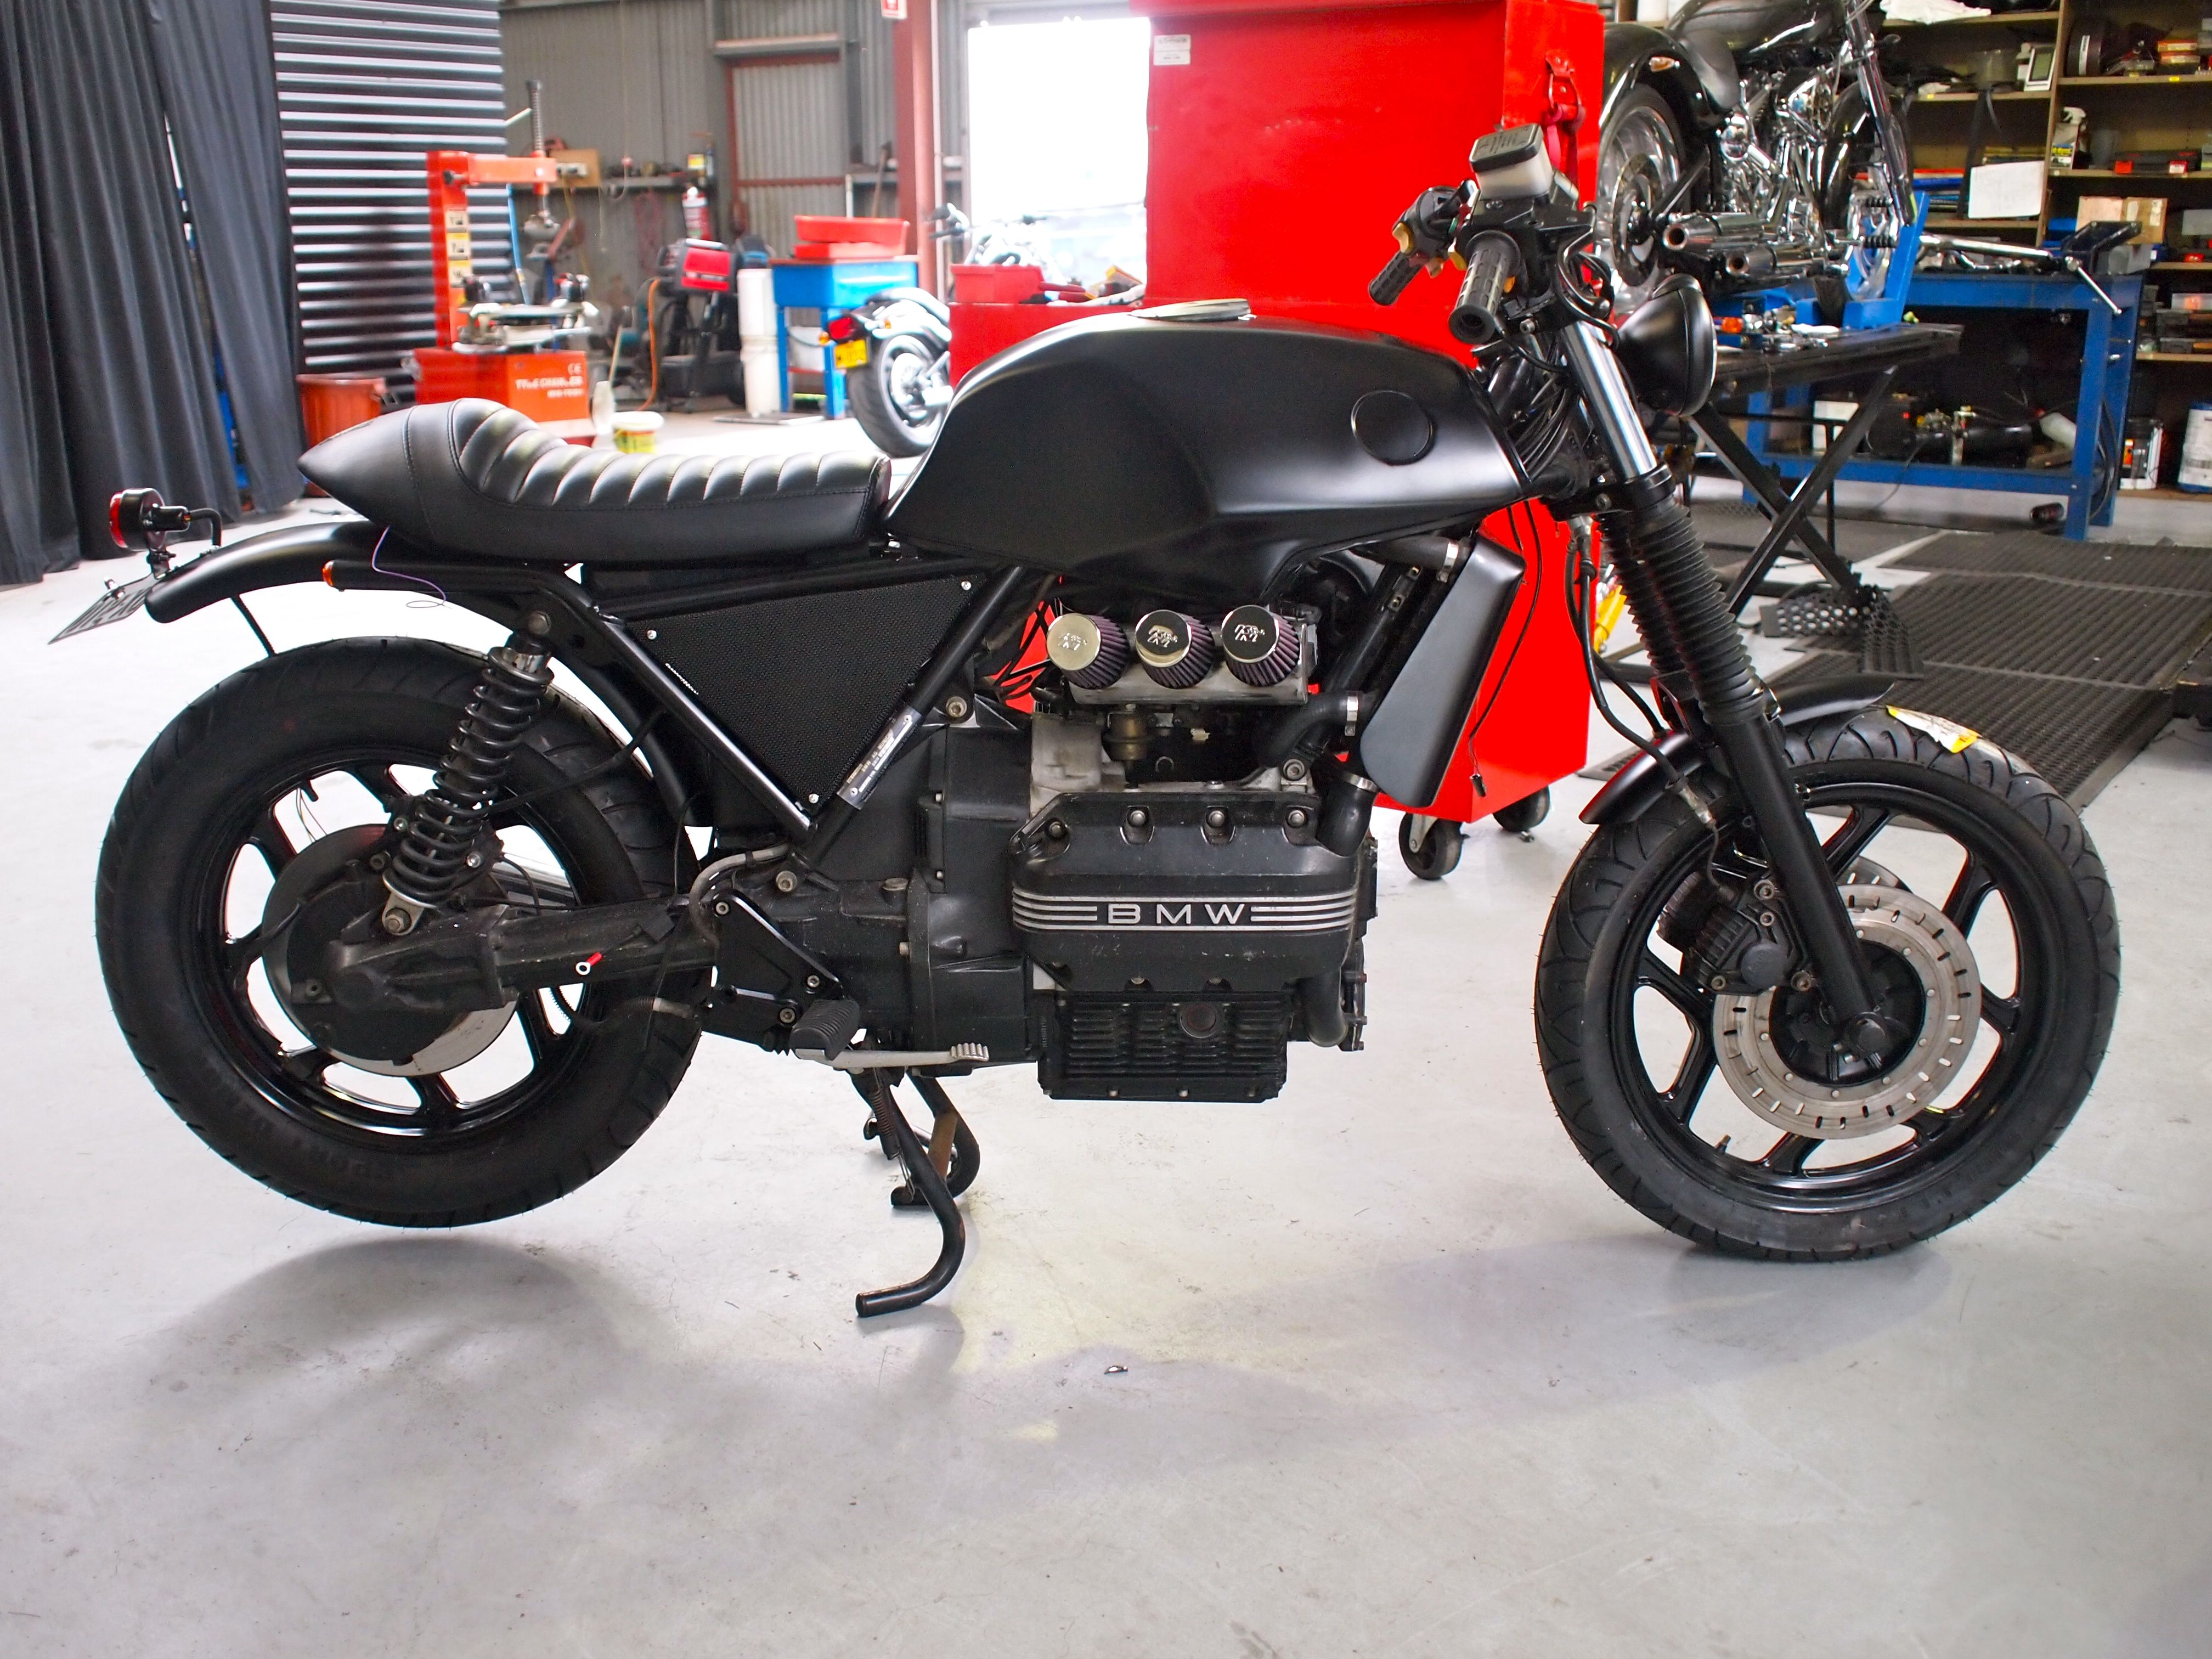 BMW K75 Custom Stage 3 Note the air filters which are a